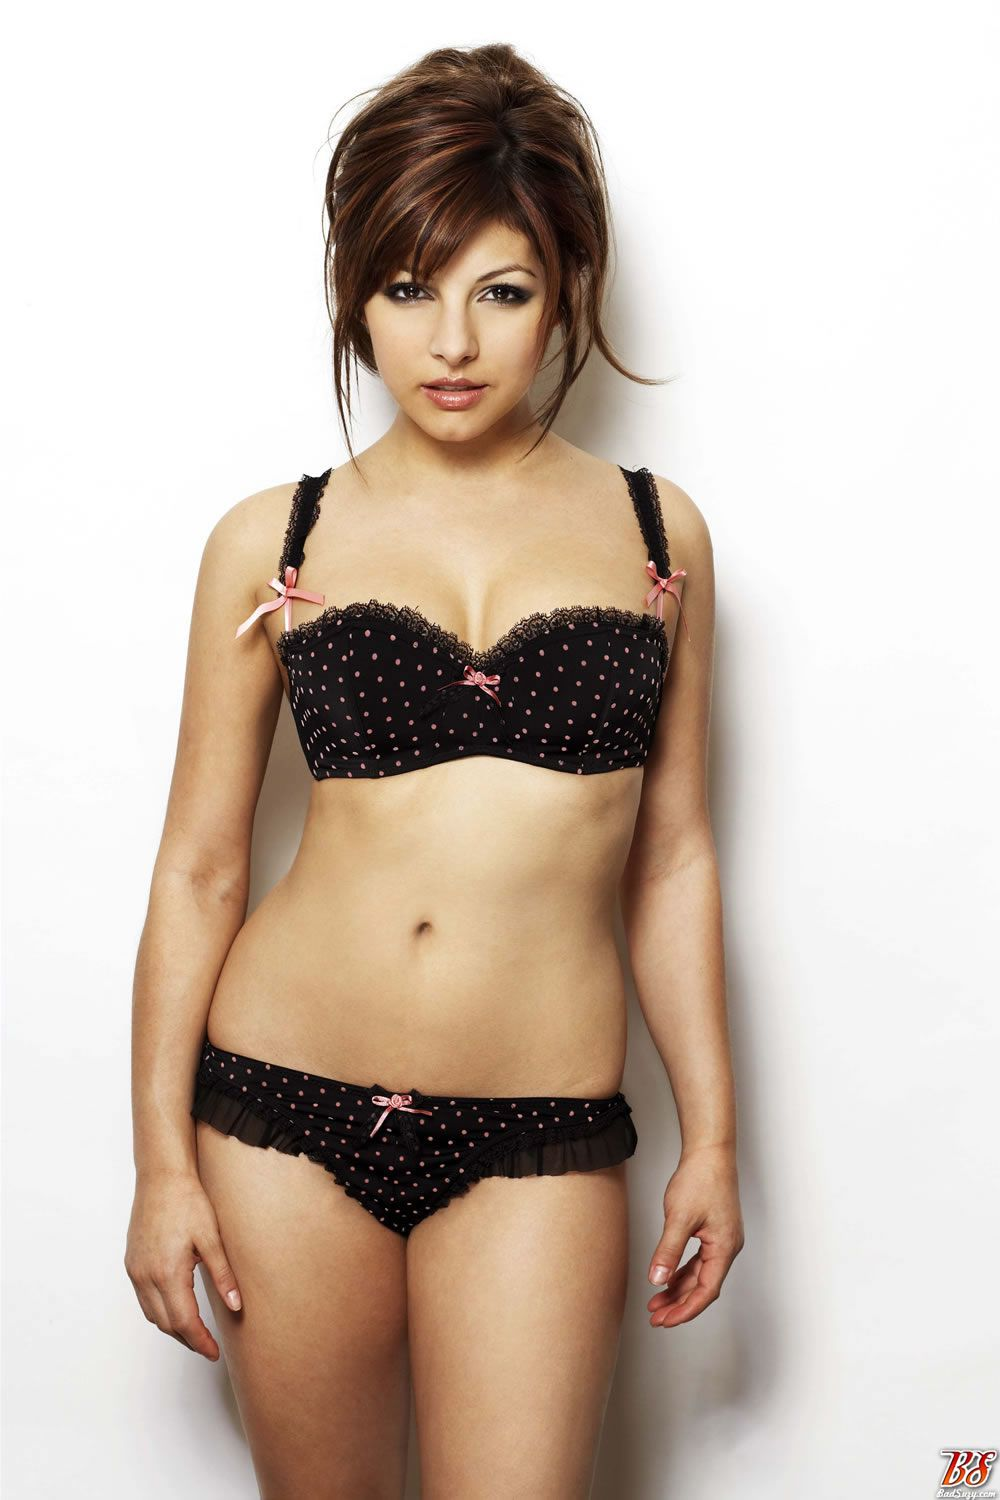 75743_roxanne_pallett_unknown_lingerie_photoshoot_1_122_476lo.jpg